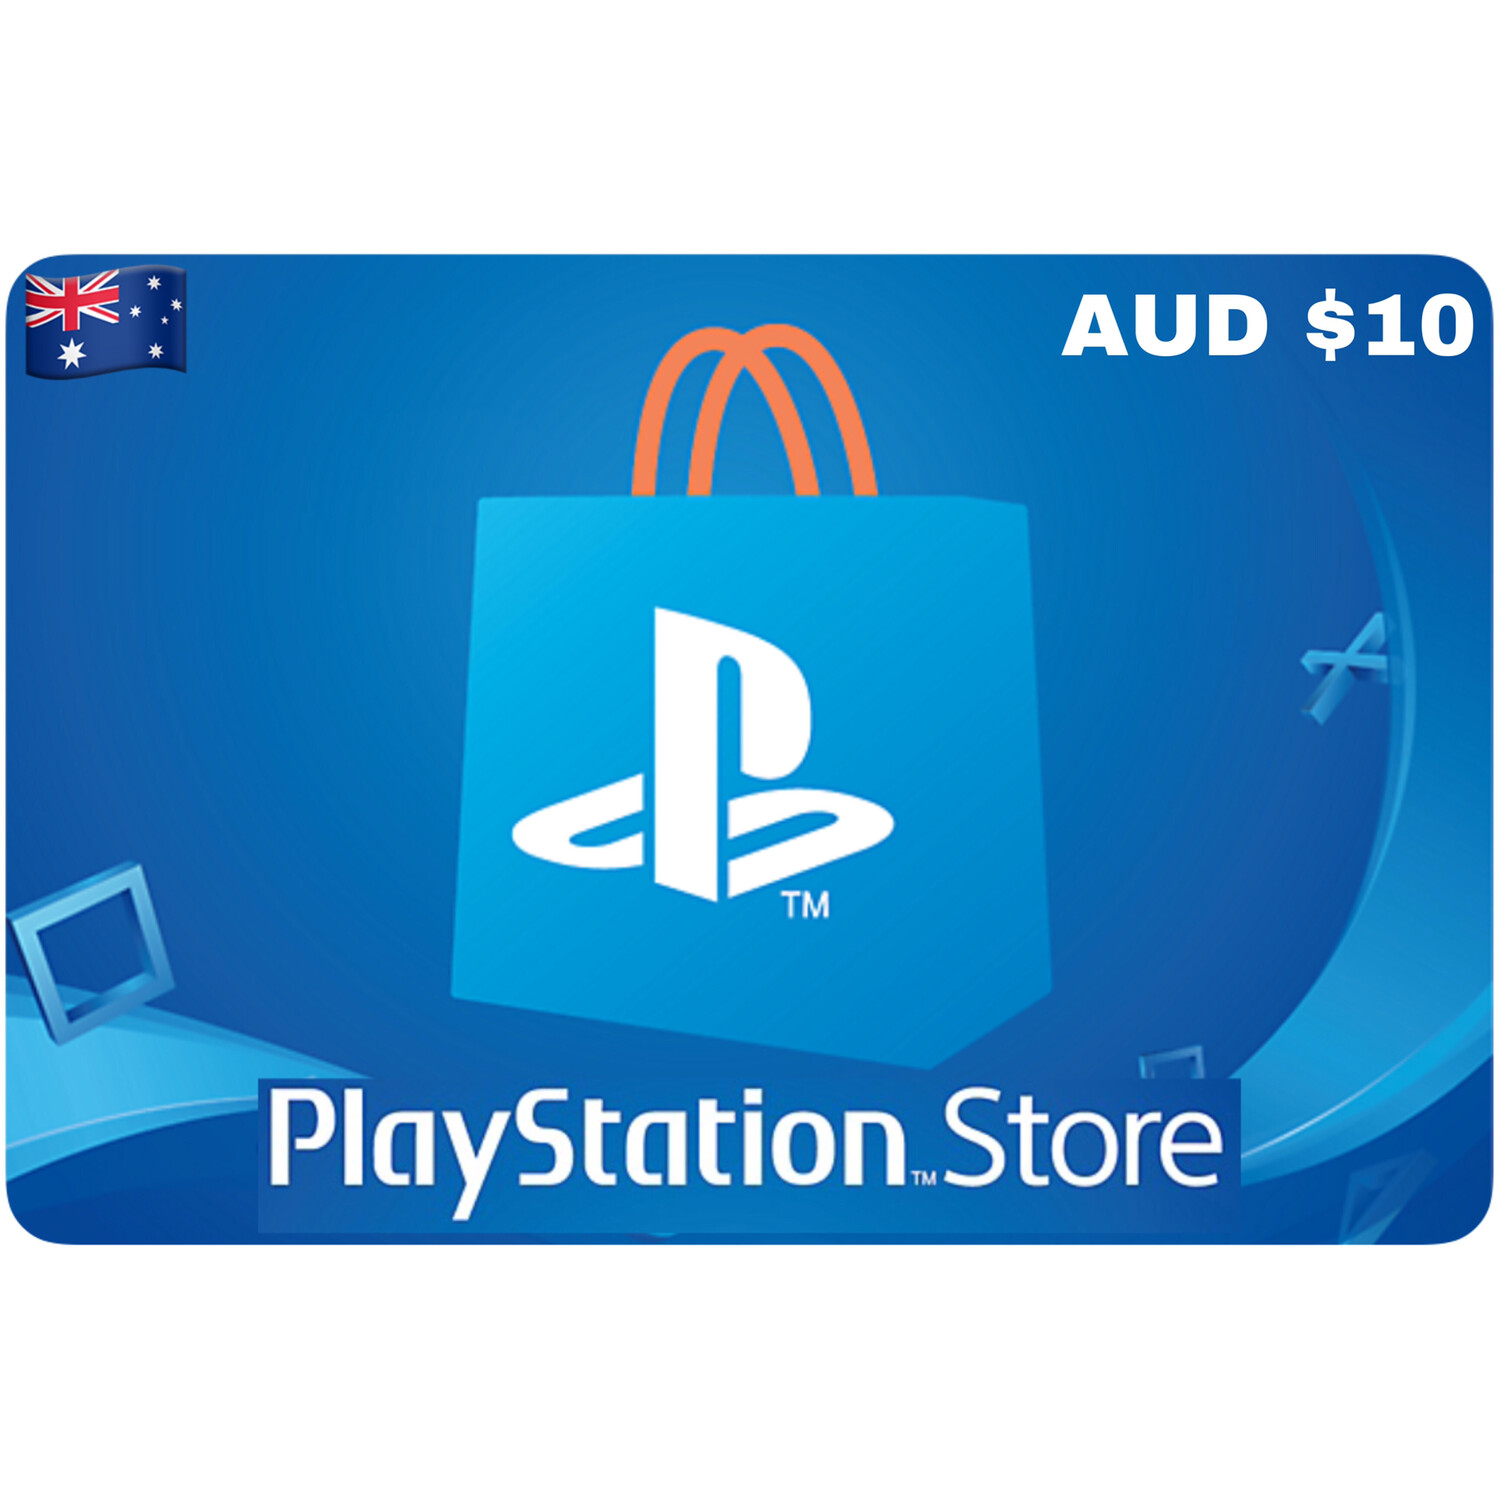 Playstation Store Gift Card Australia AUD $10